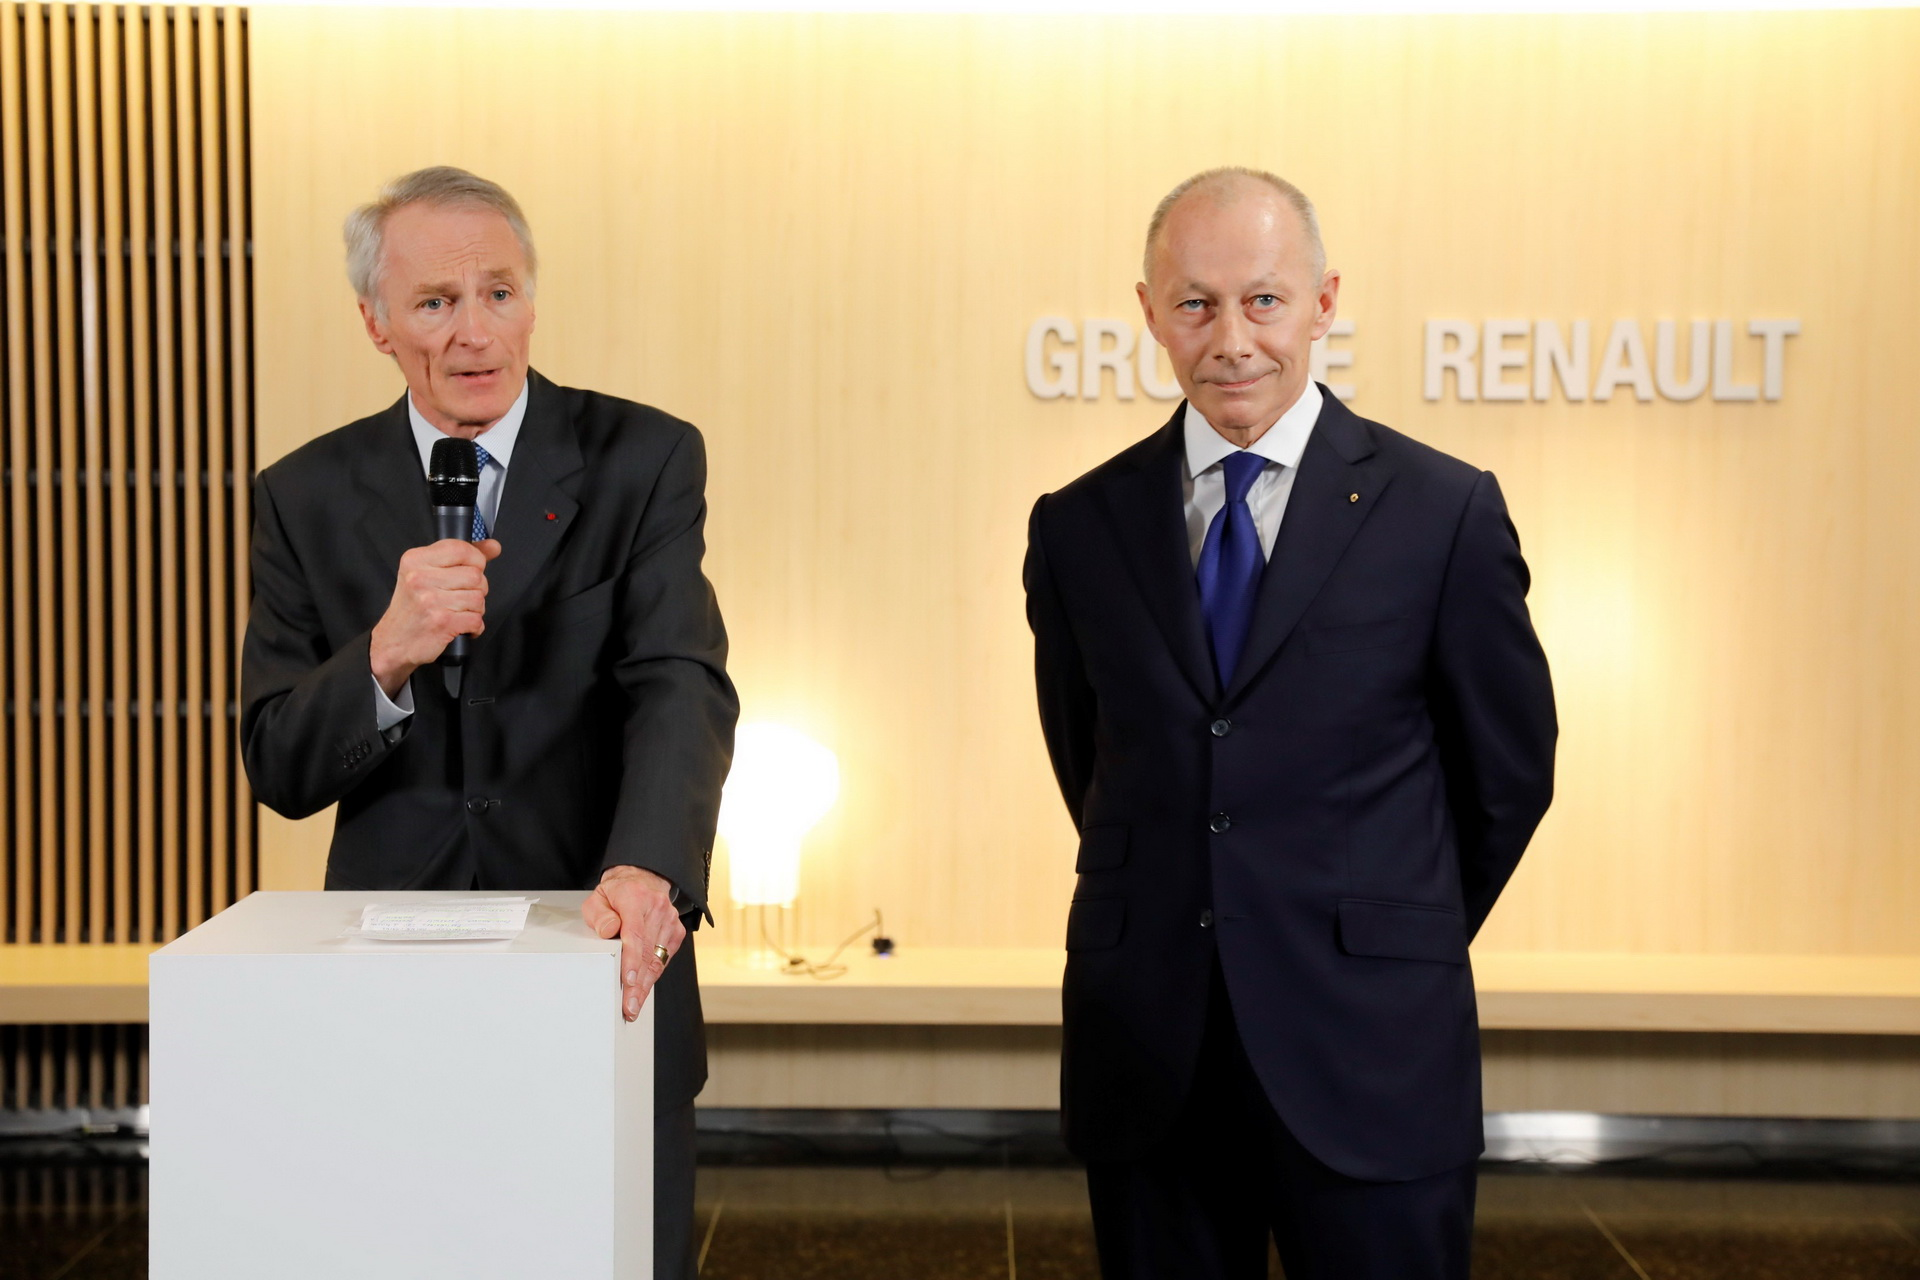 renault-jean-dominique-senard-and-thierry-bollore-2.jpg